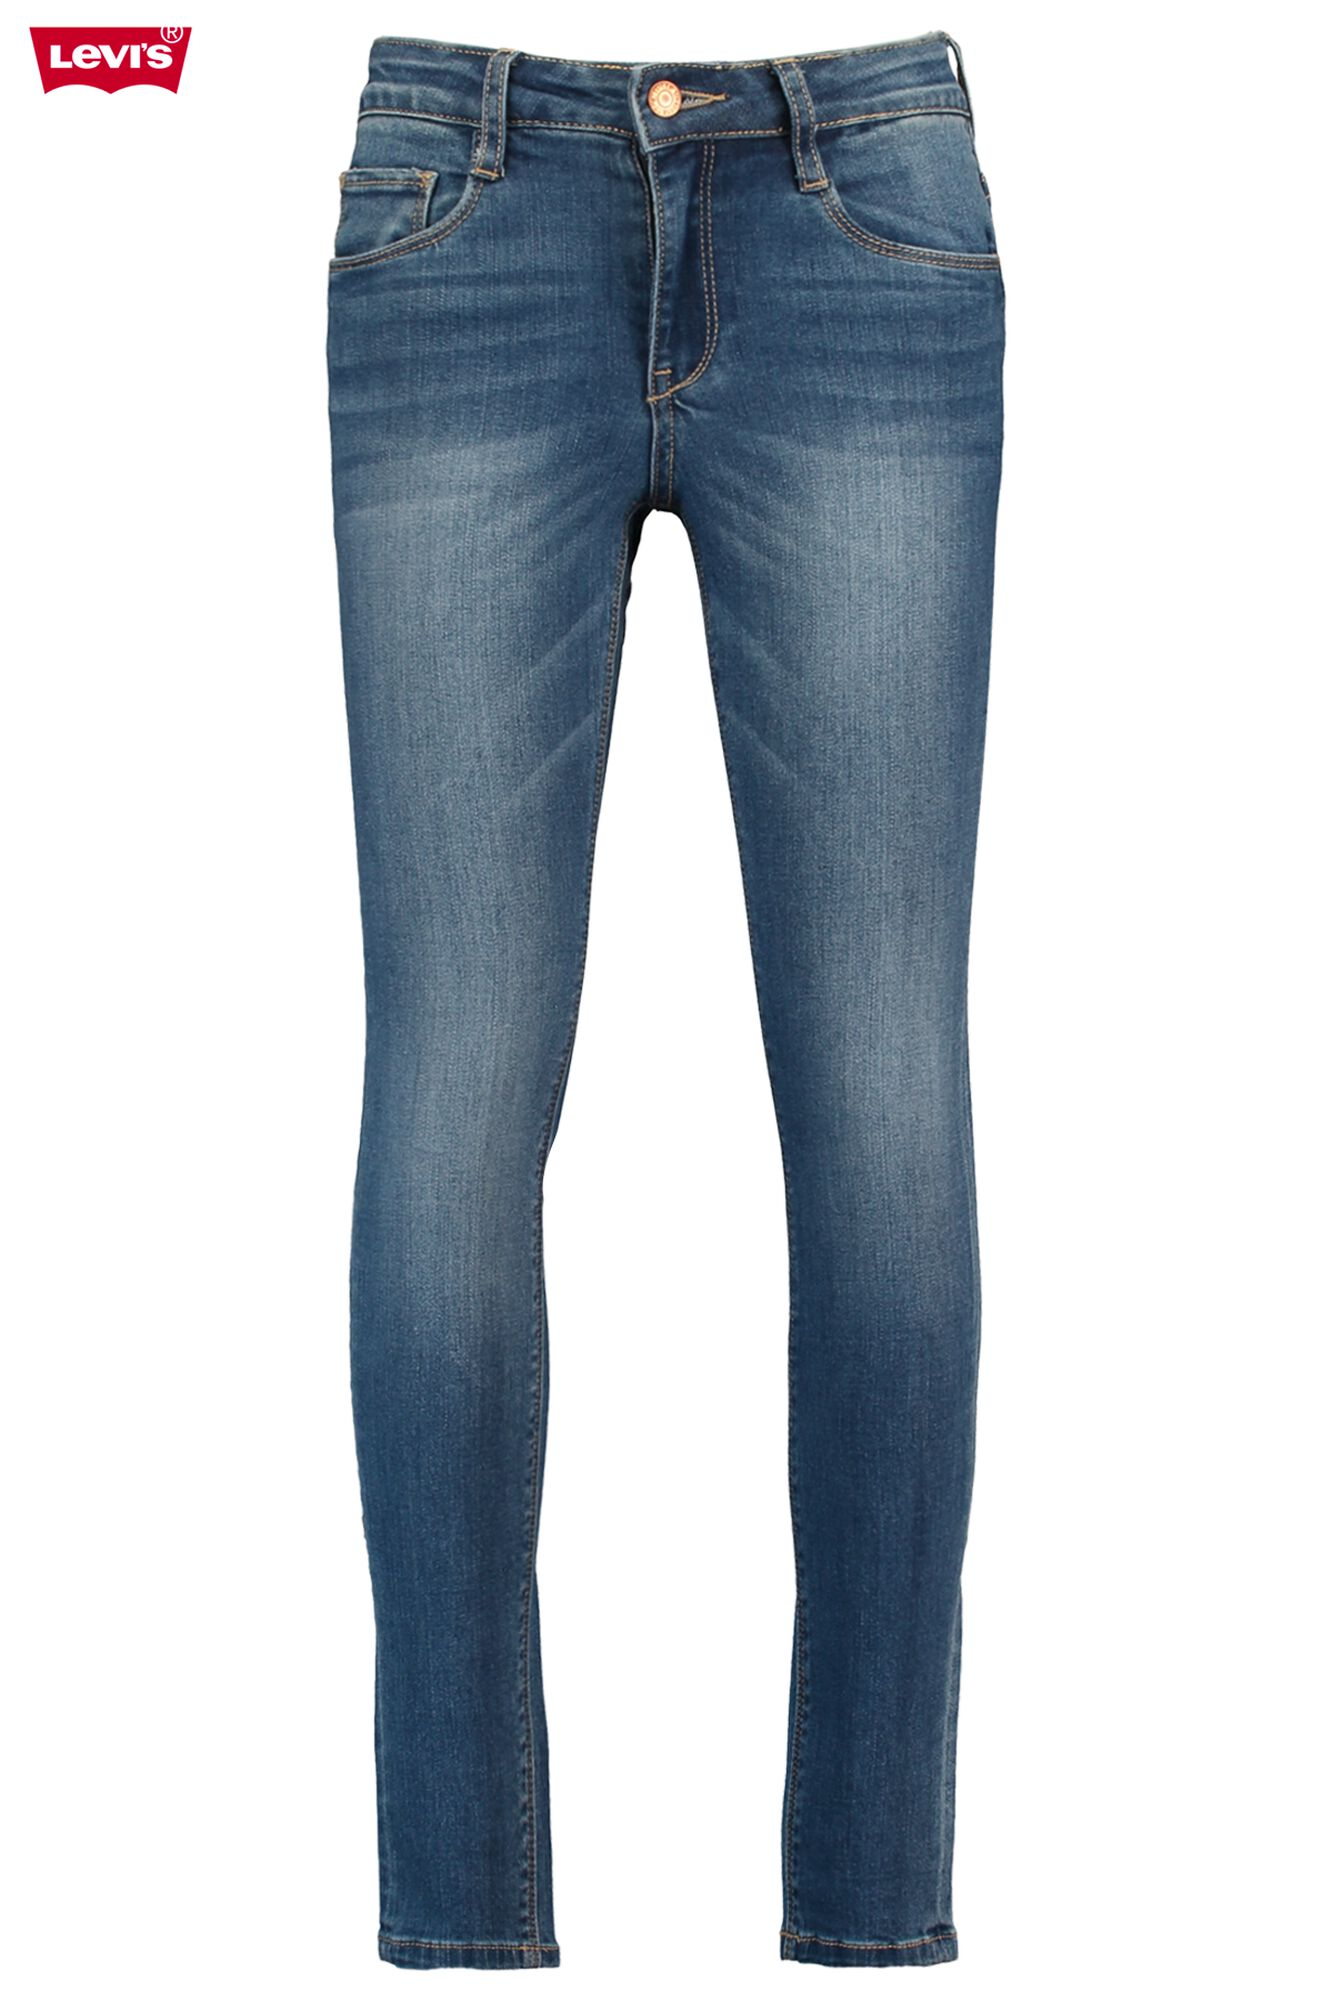 0329b5c2ef777 Girls Jeans Levi s 721 Skinny high rise Blue Buy Online